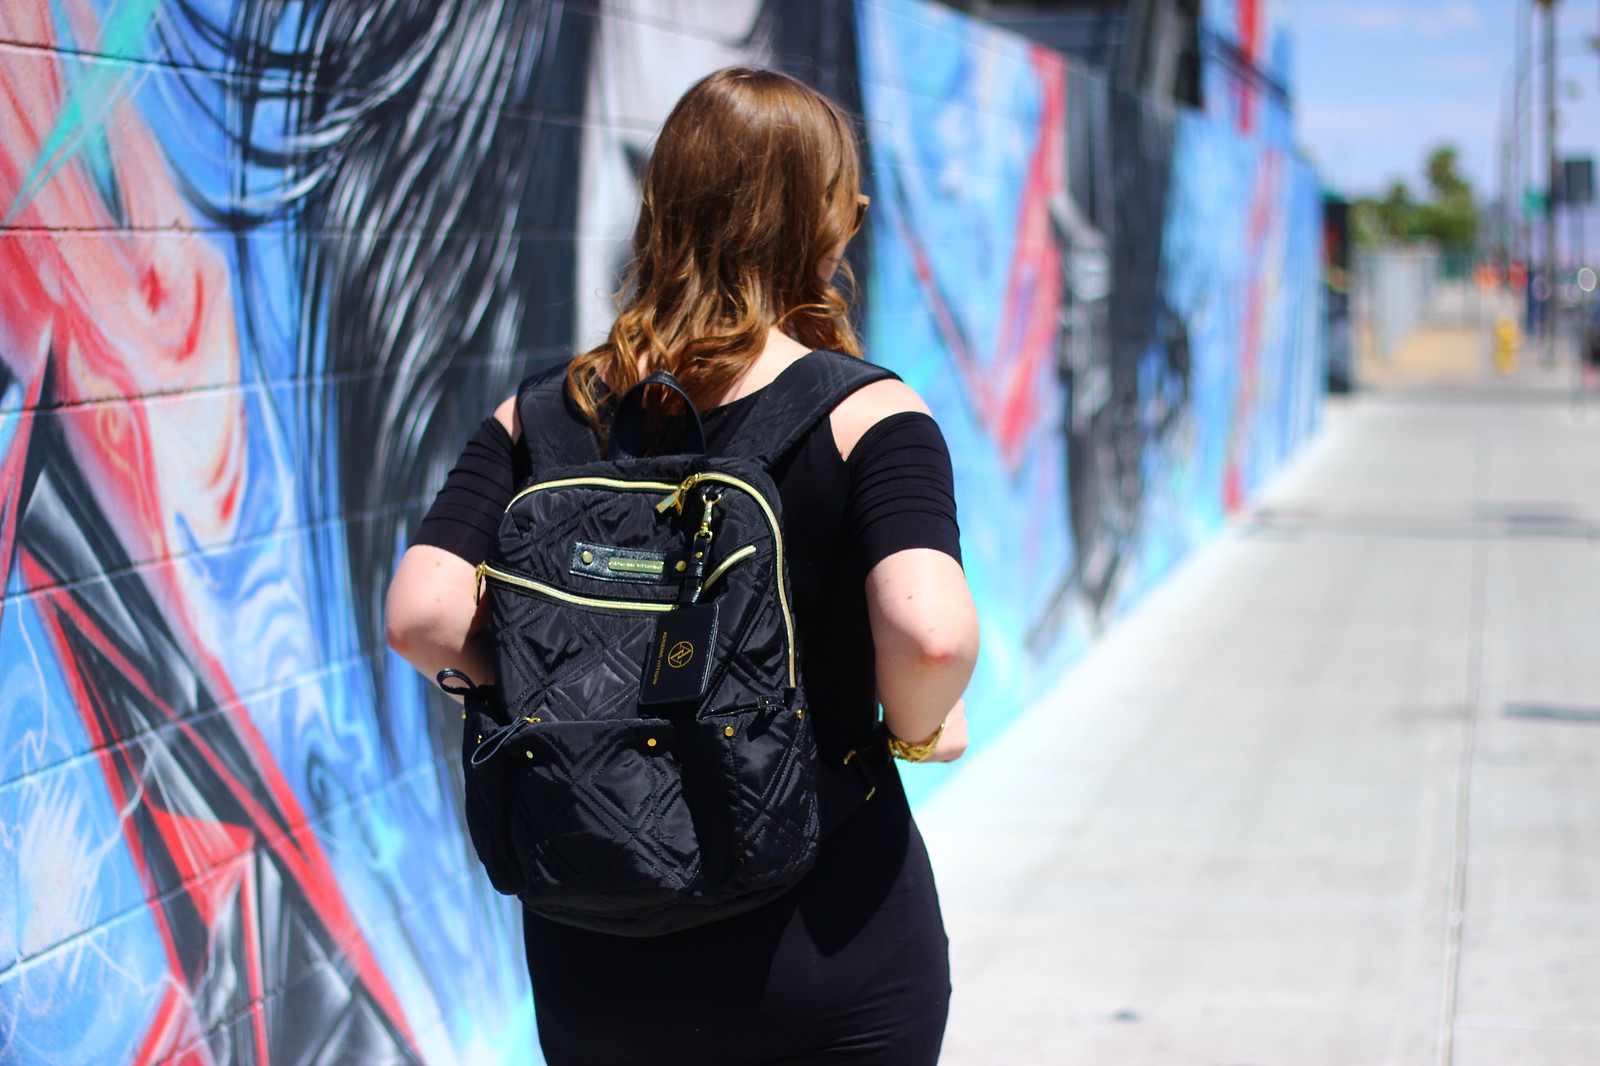 Black cold shoulder dress and black backpack